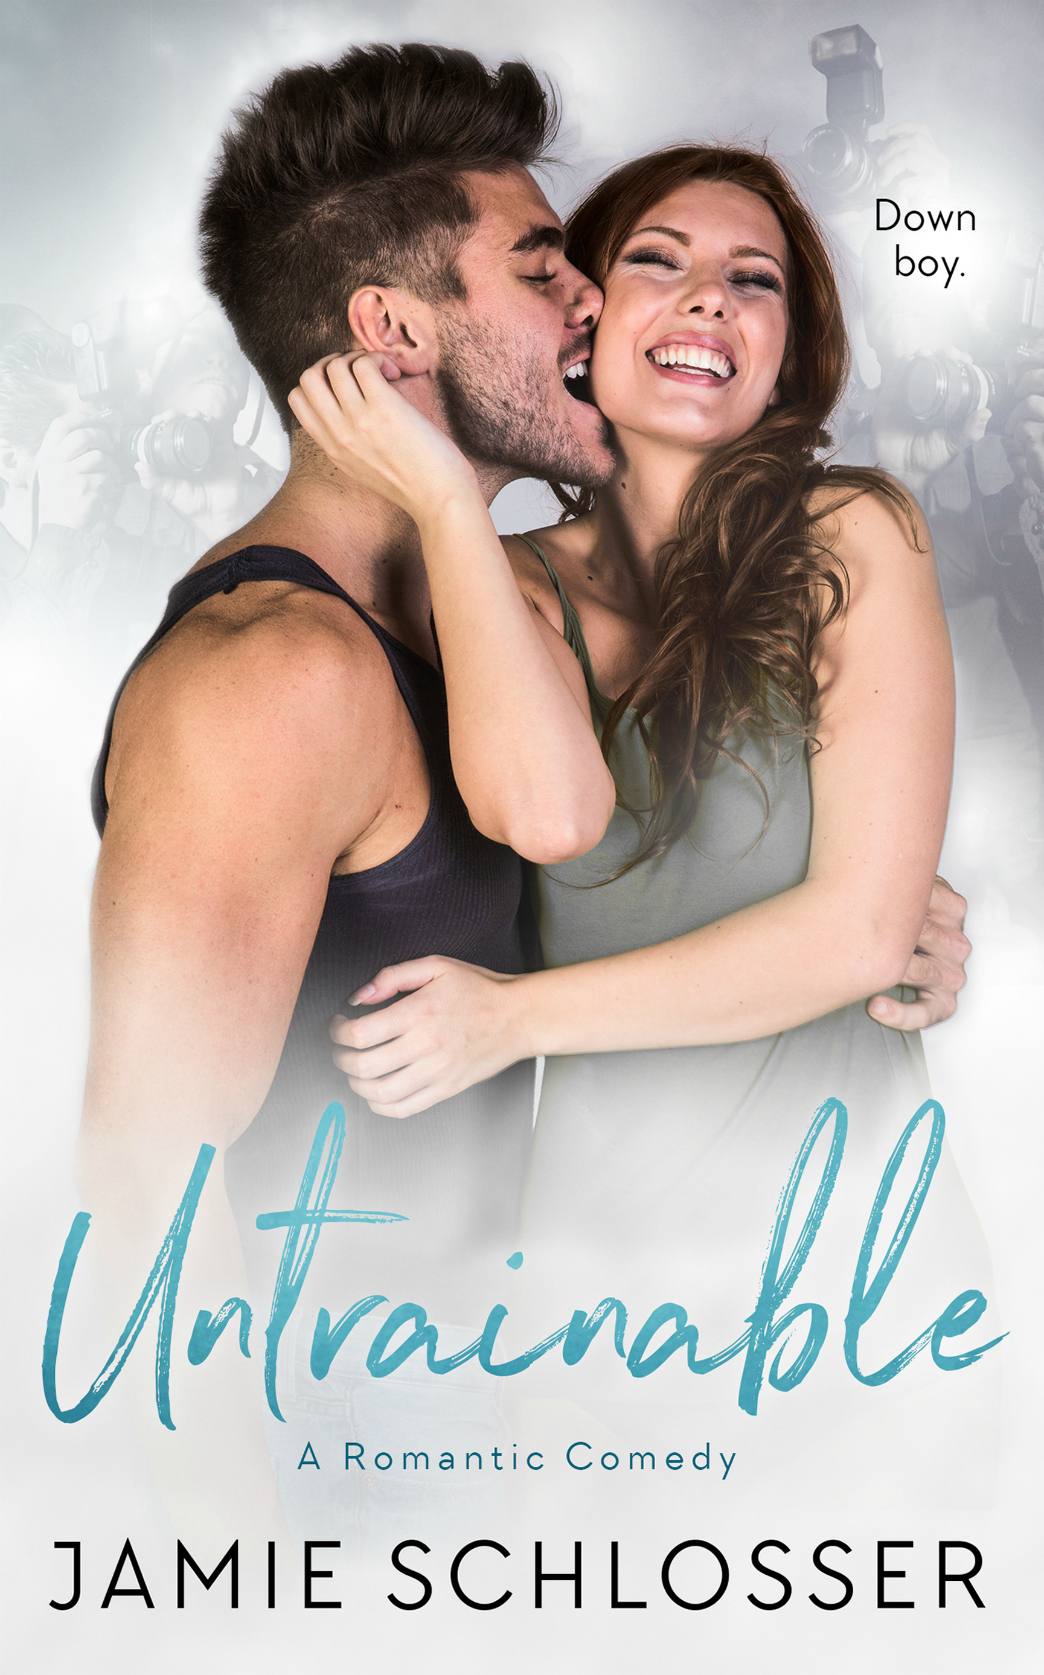 Untrainable by Jamie Schlosser